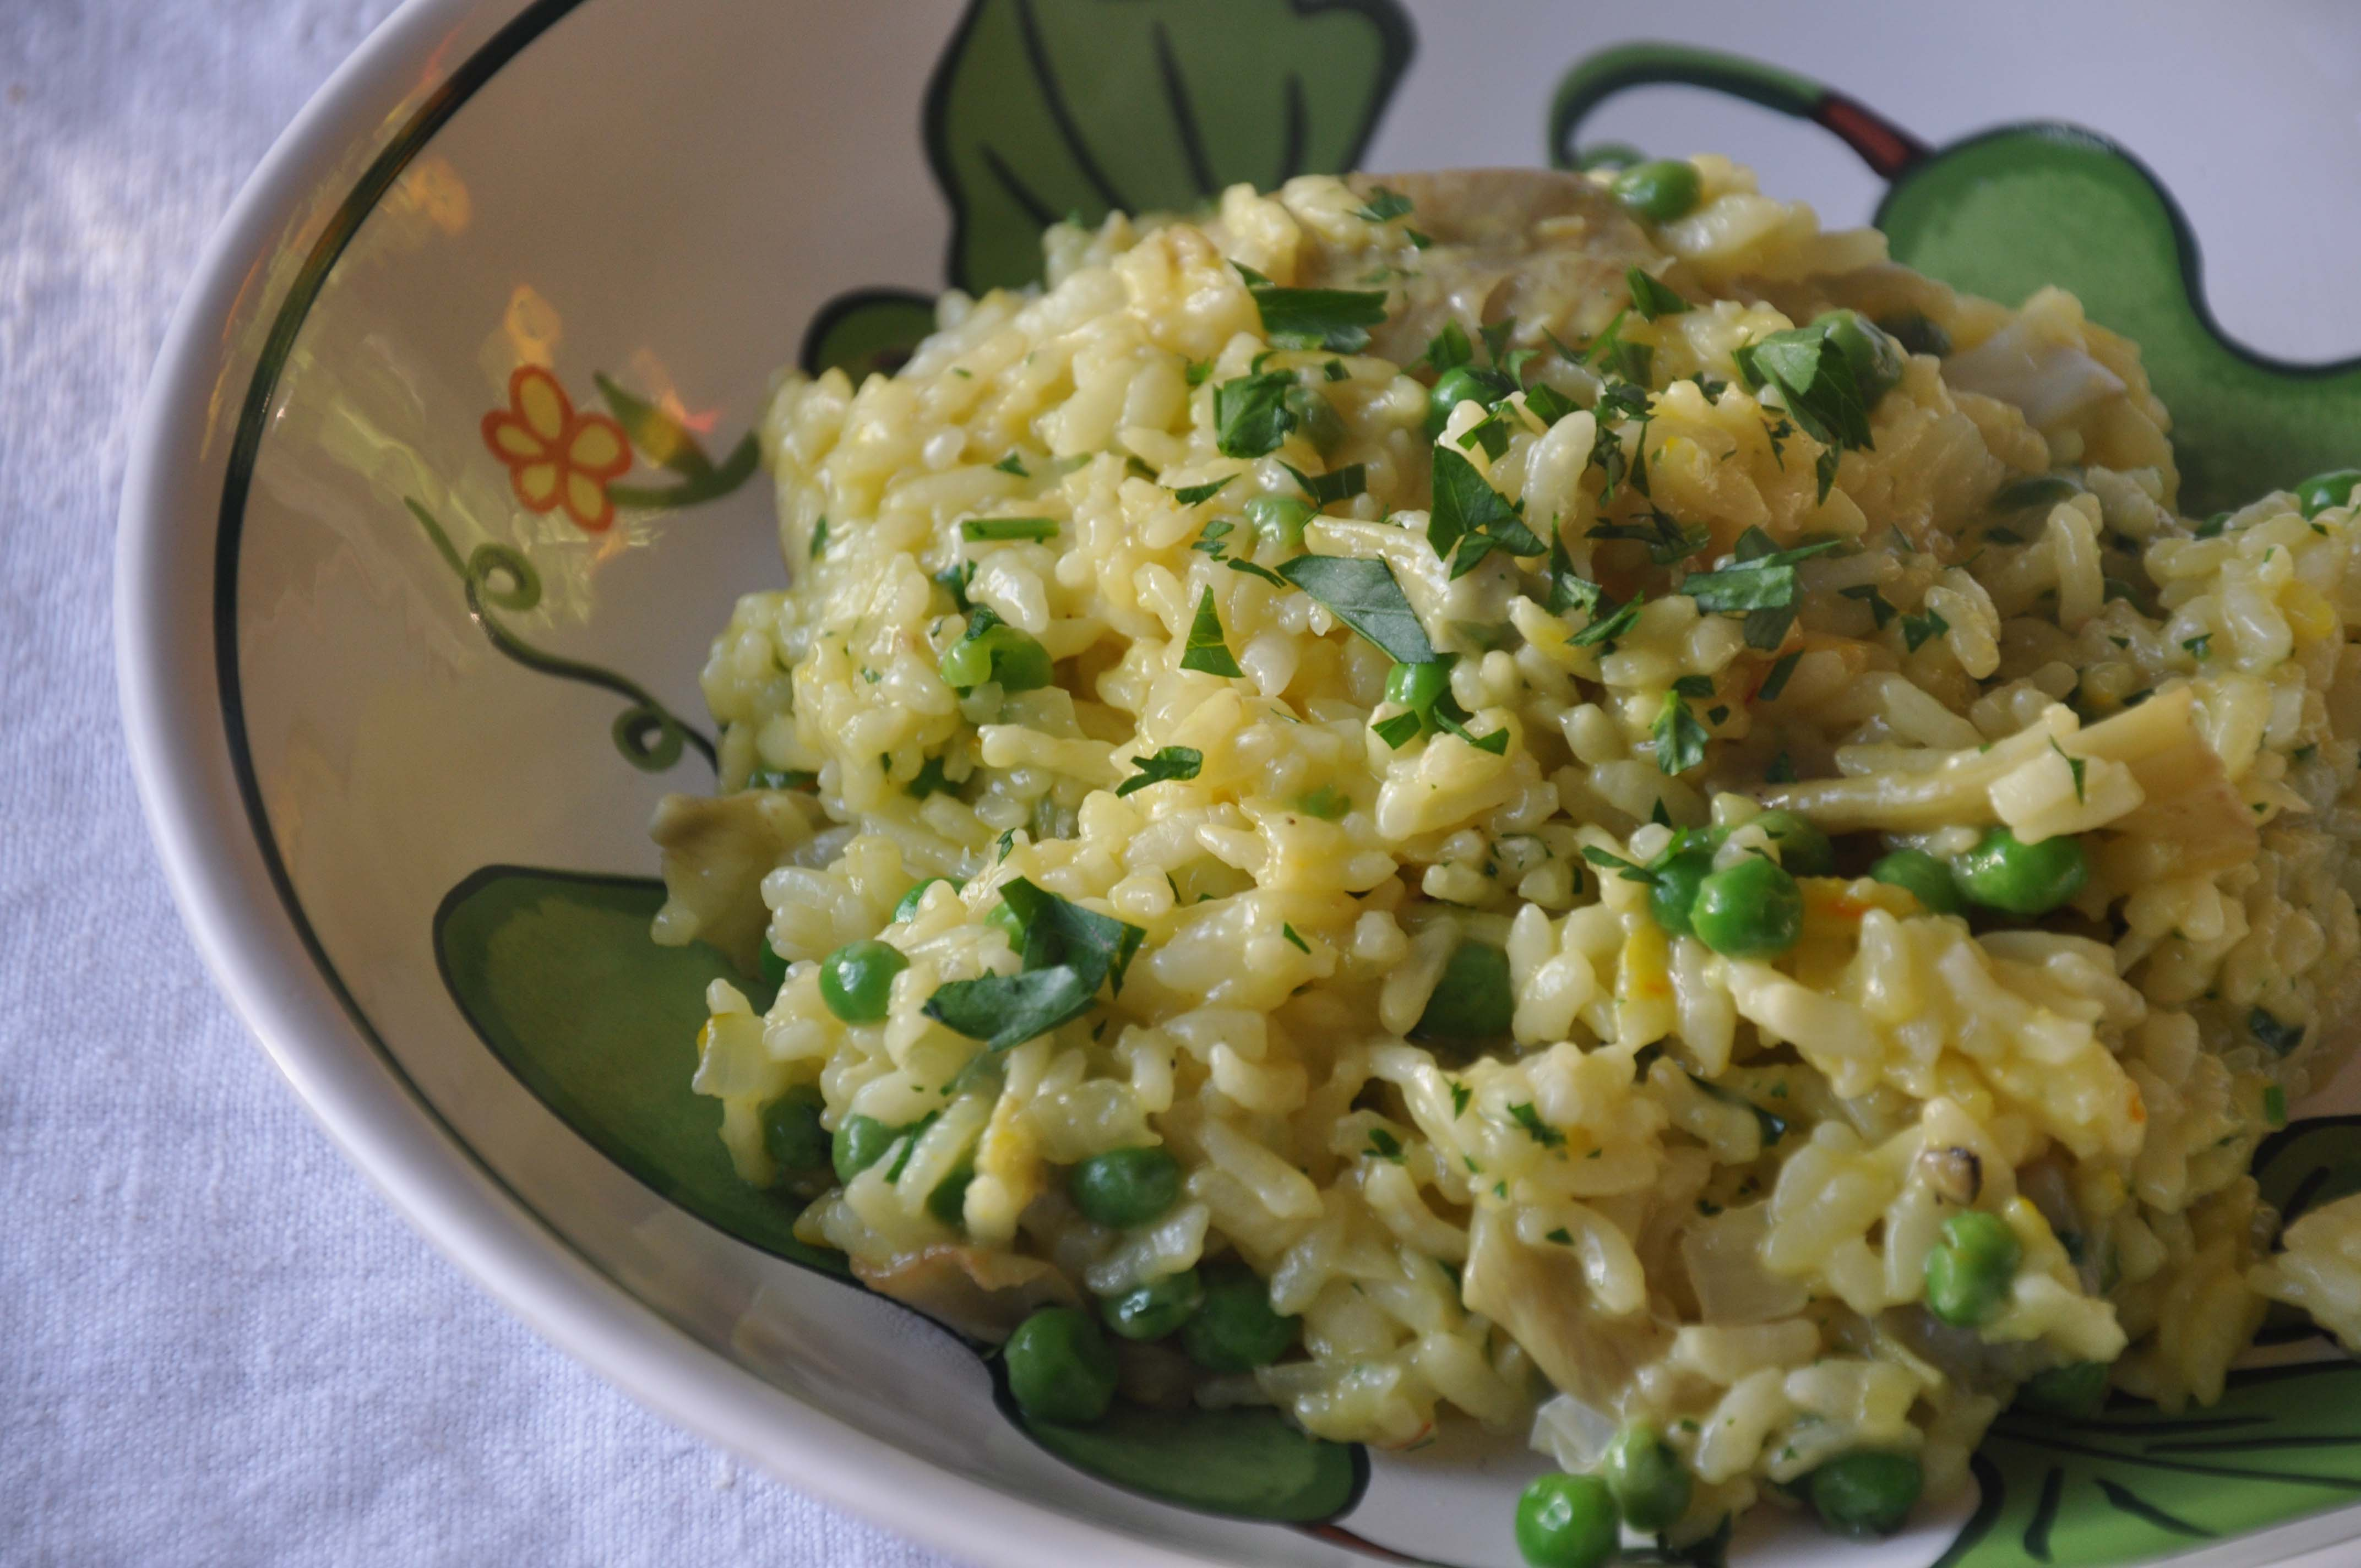 Pressure Cooker Saffron and Artichoke Risotto